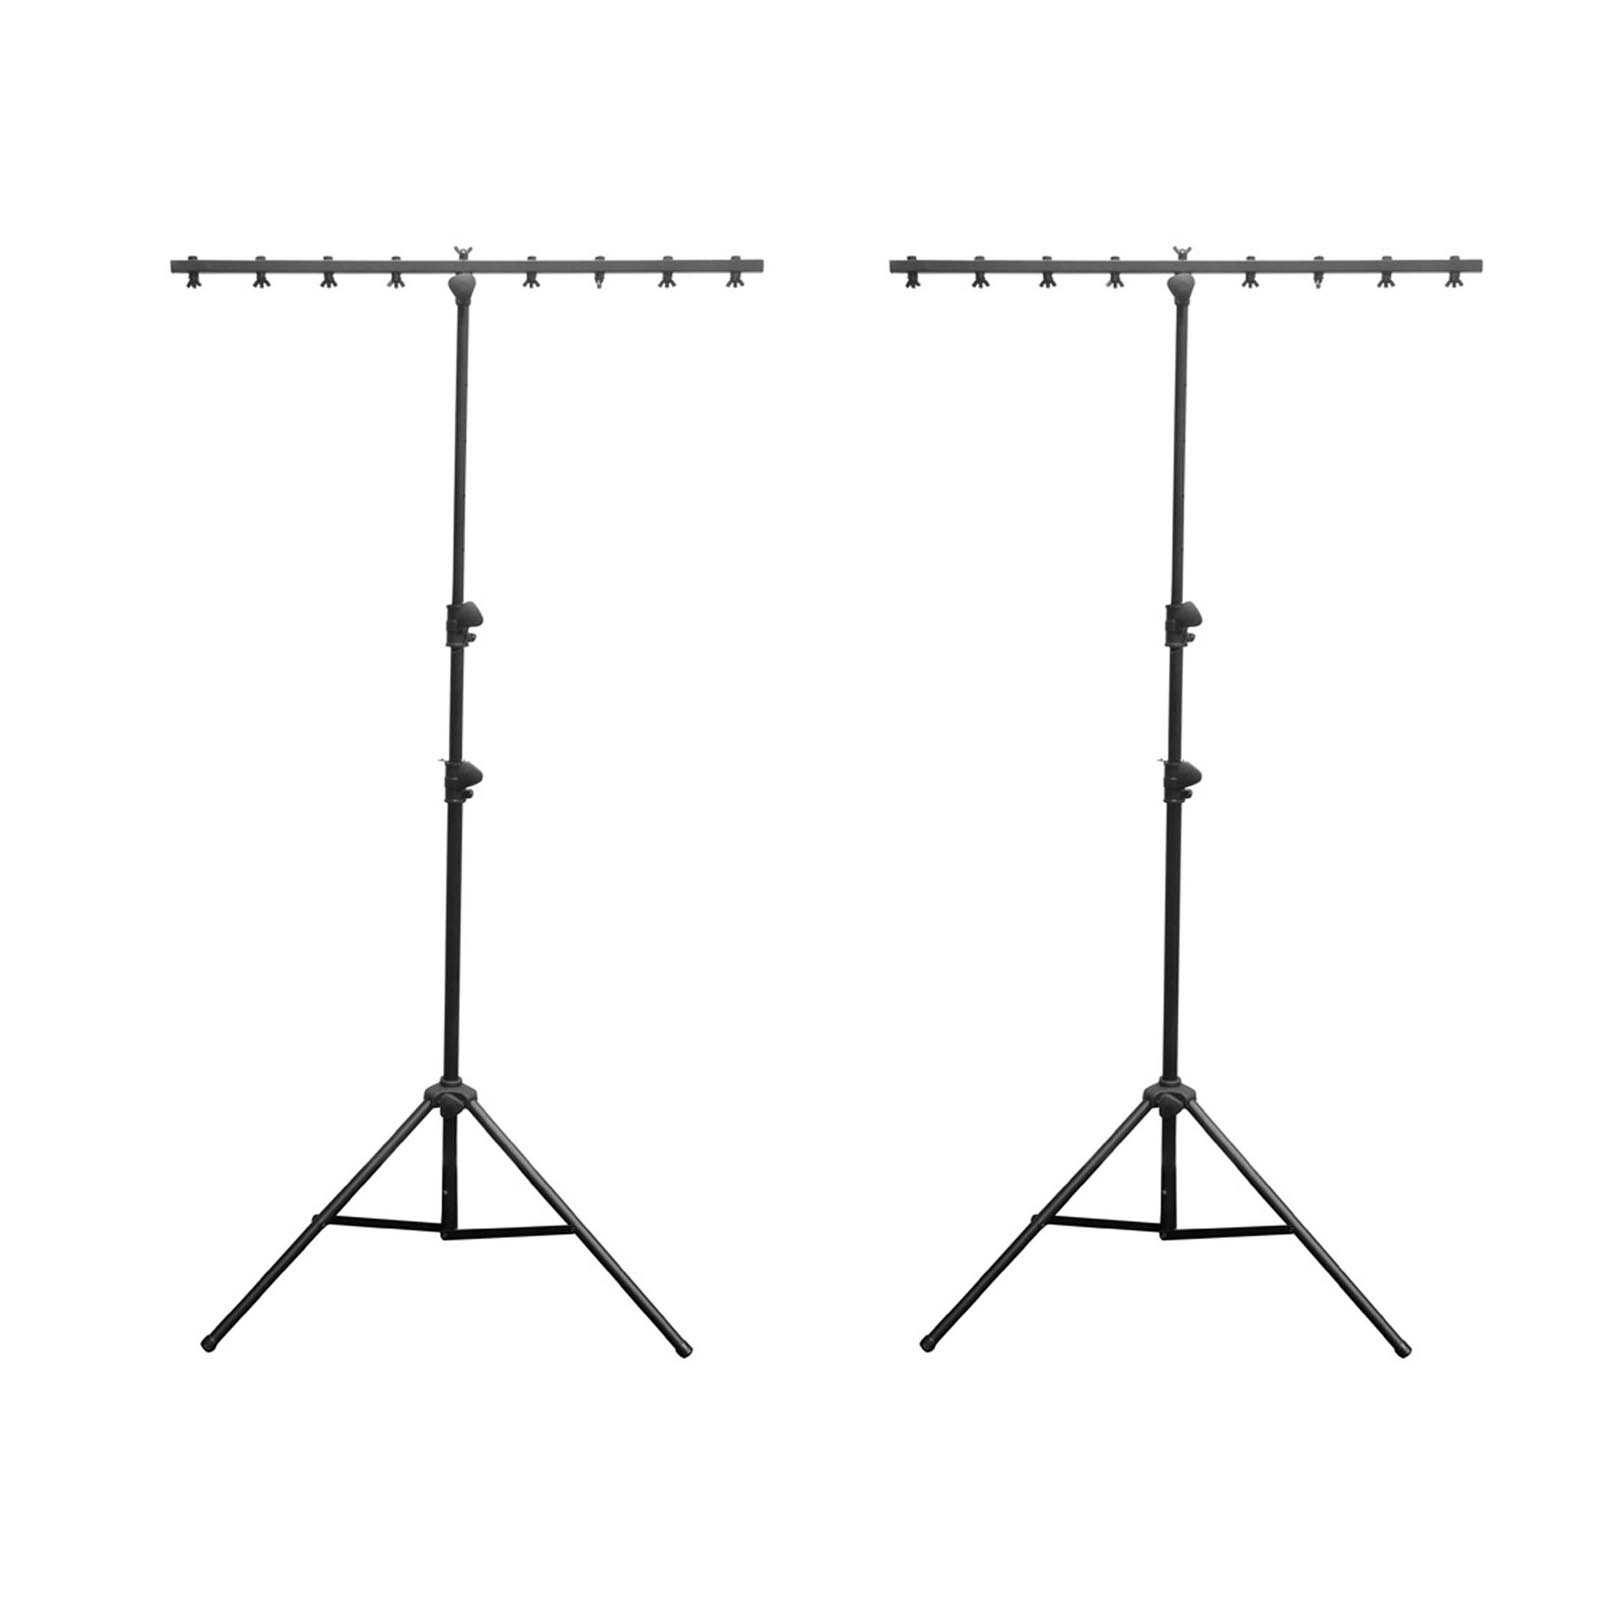 2) Chauvet DJ CH-06 Portable Lightweight Easy Setup T Bar Tripod Light Stands by Chauvet Dj